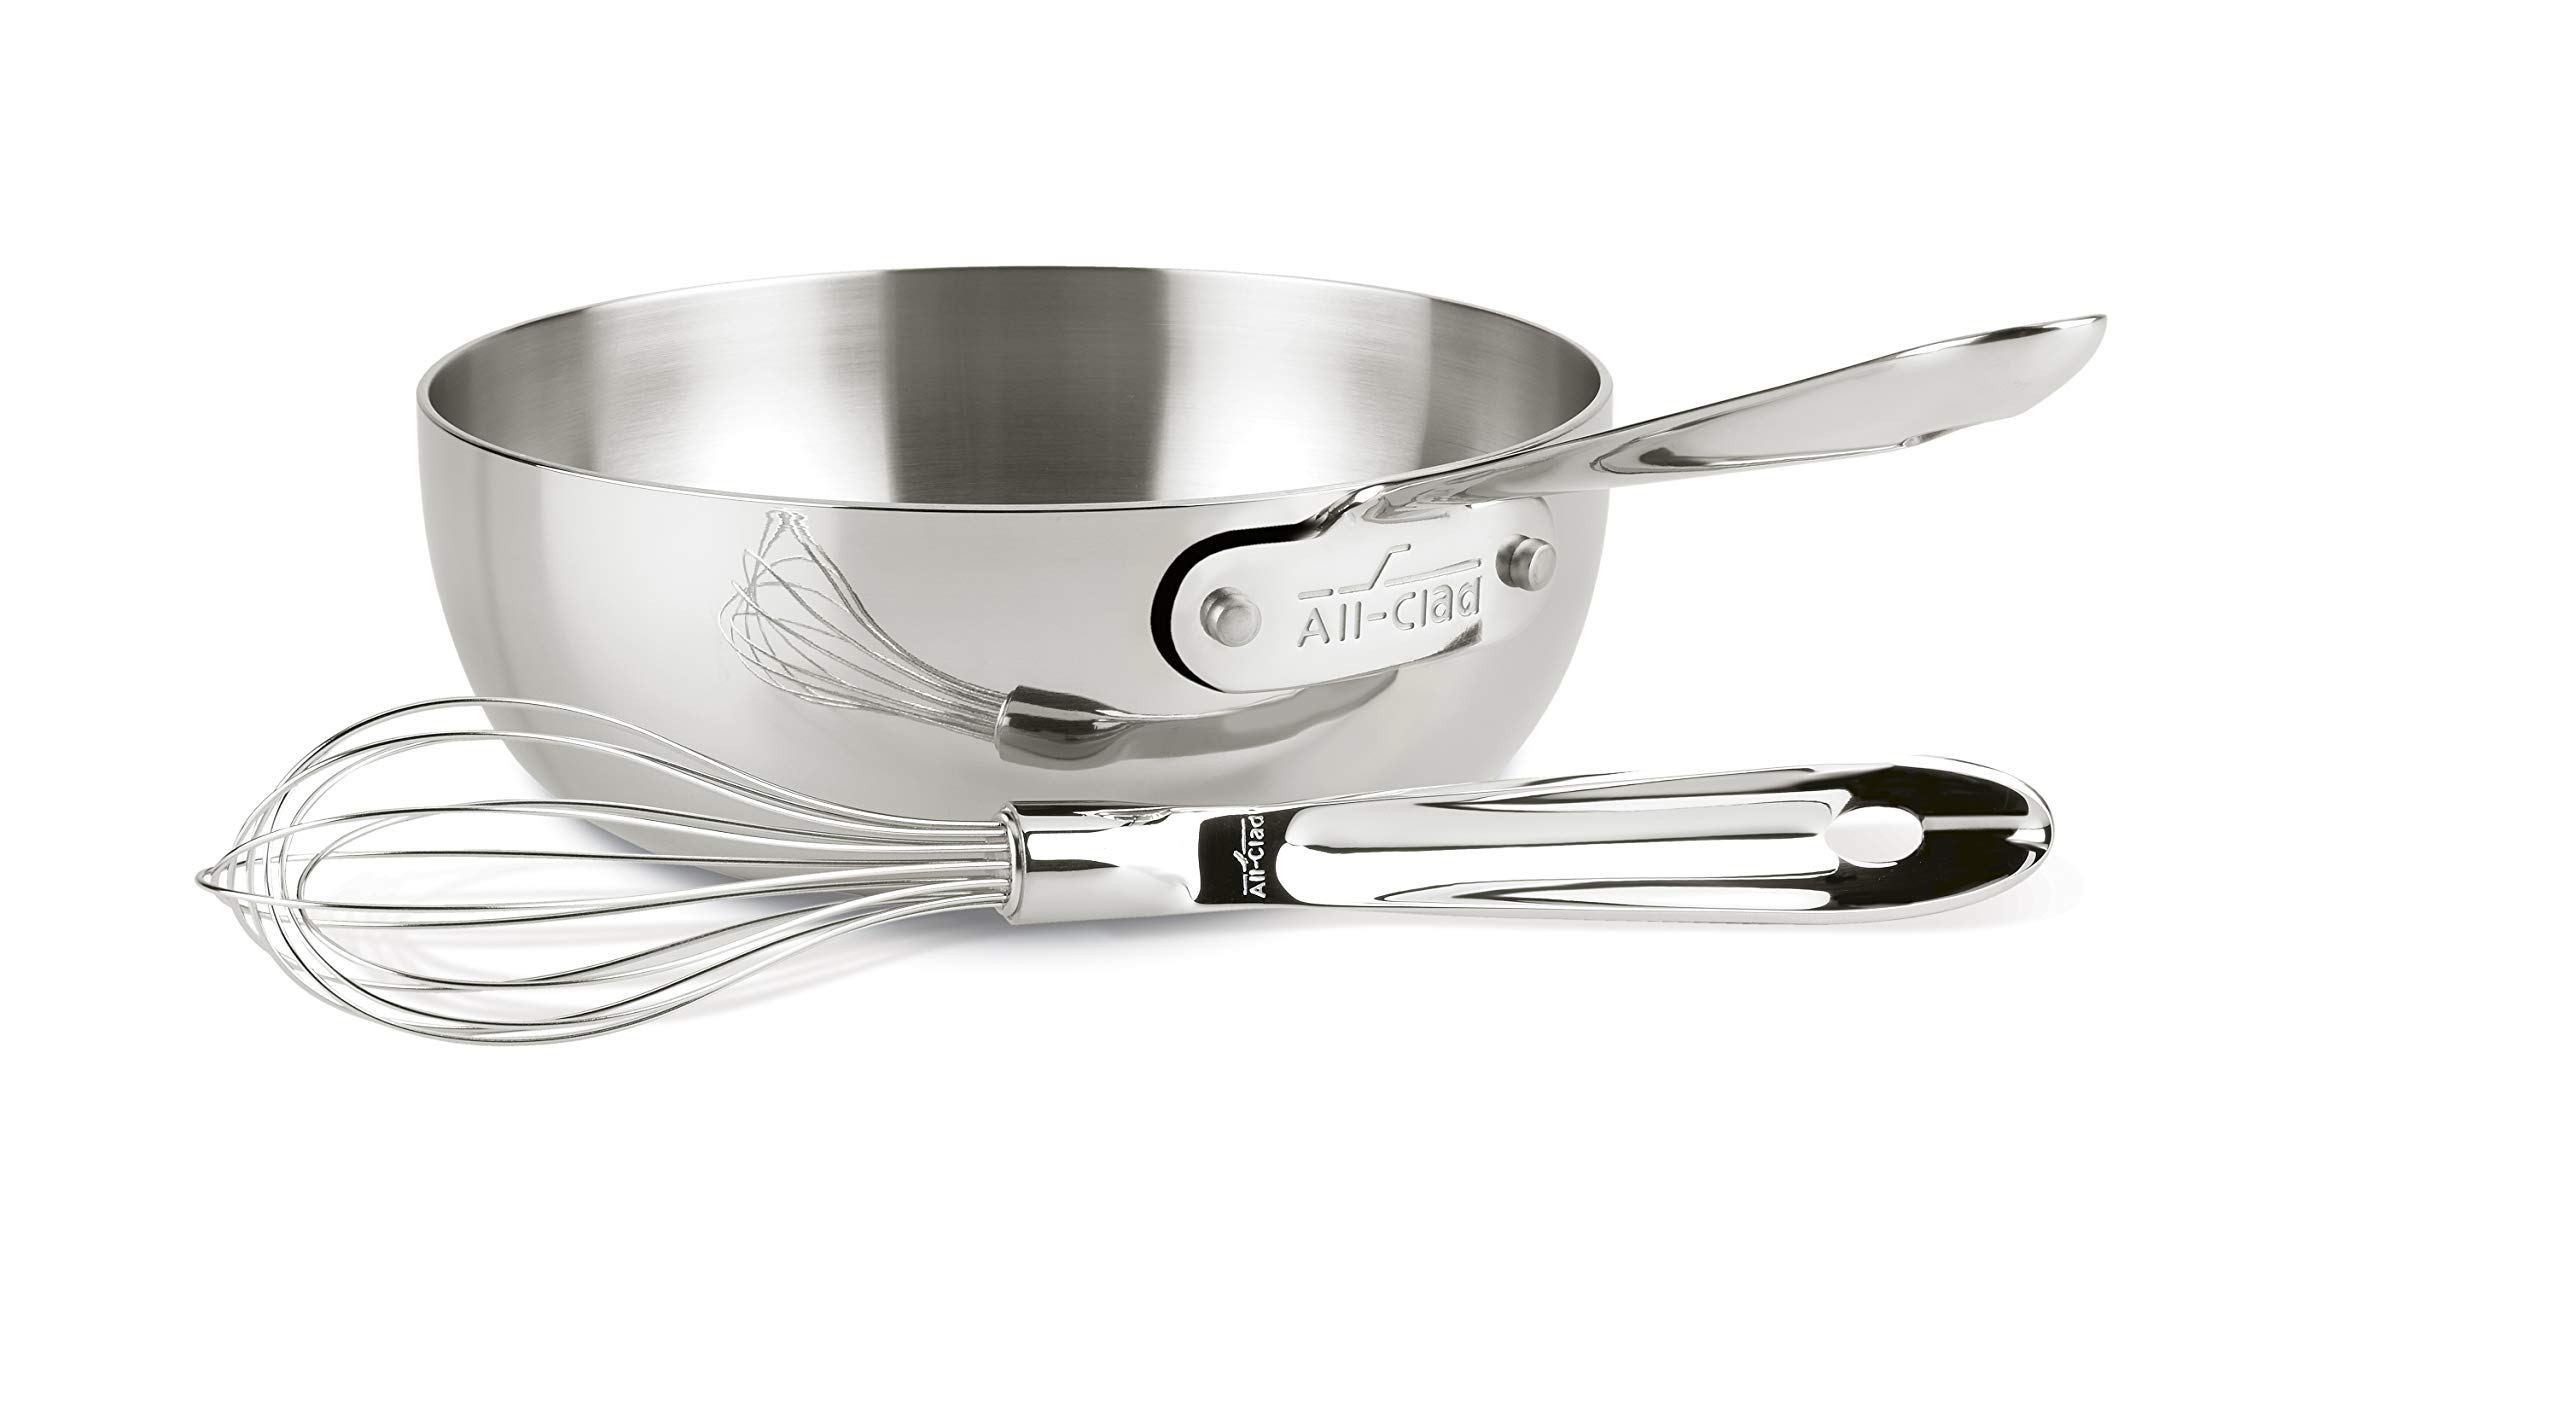 All-Clad 4212 Stainless Steel Saucier Sauce Pan Cookware, 2-Quart, Silver by All-Clad